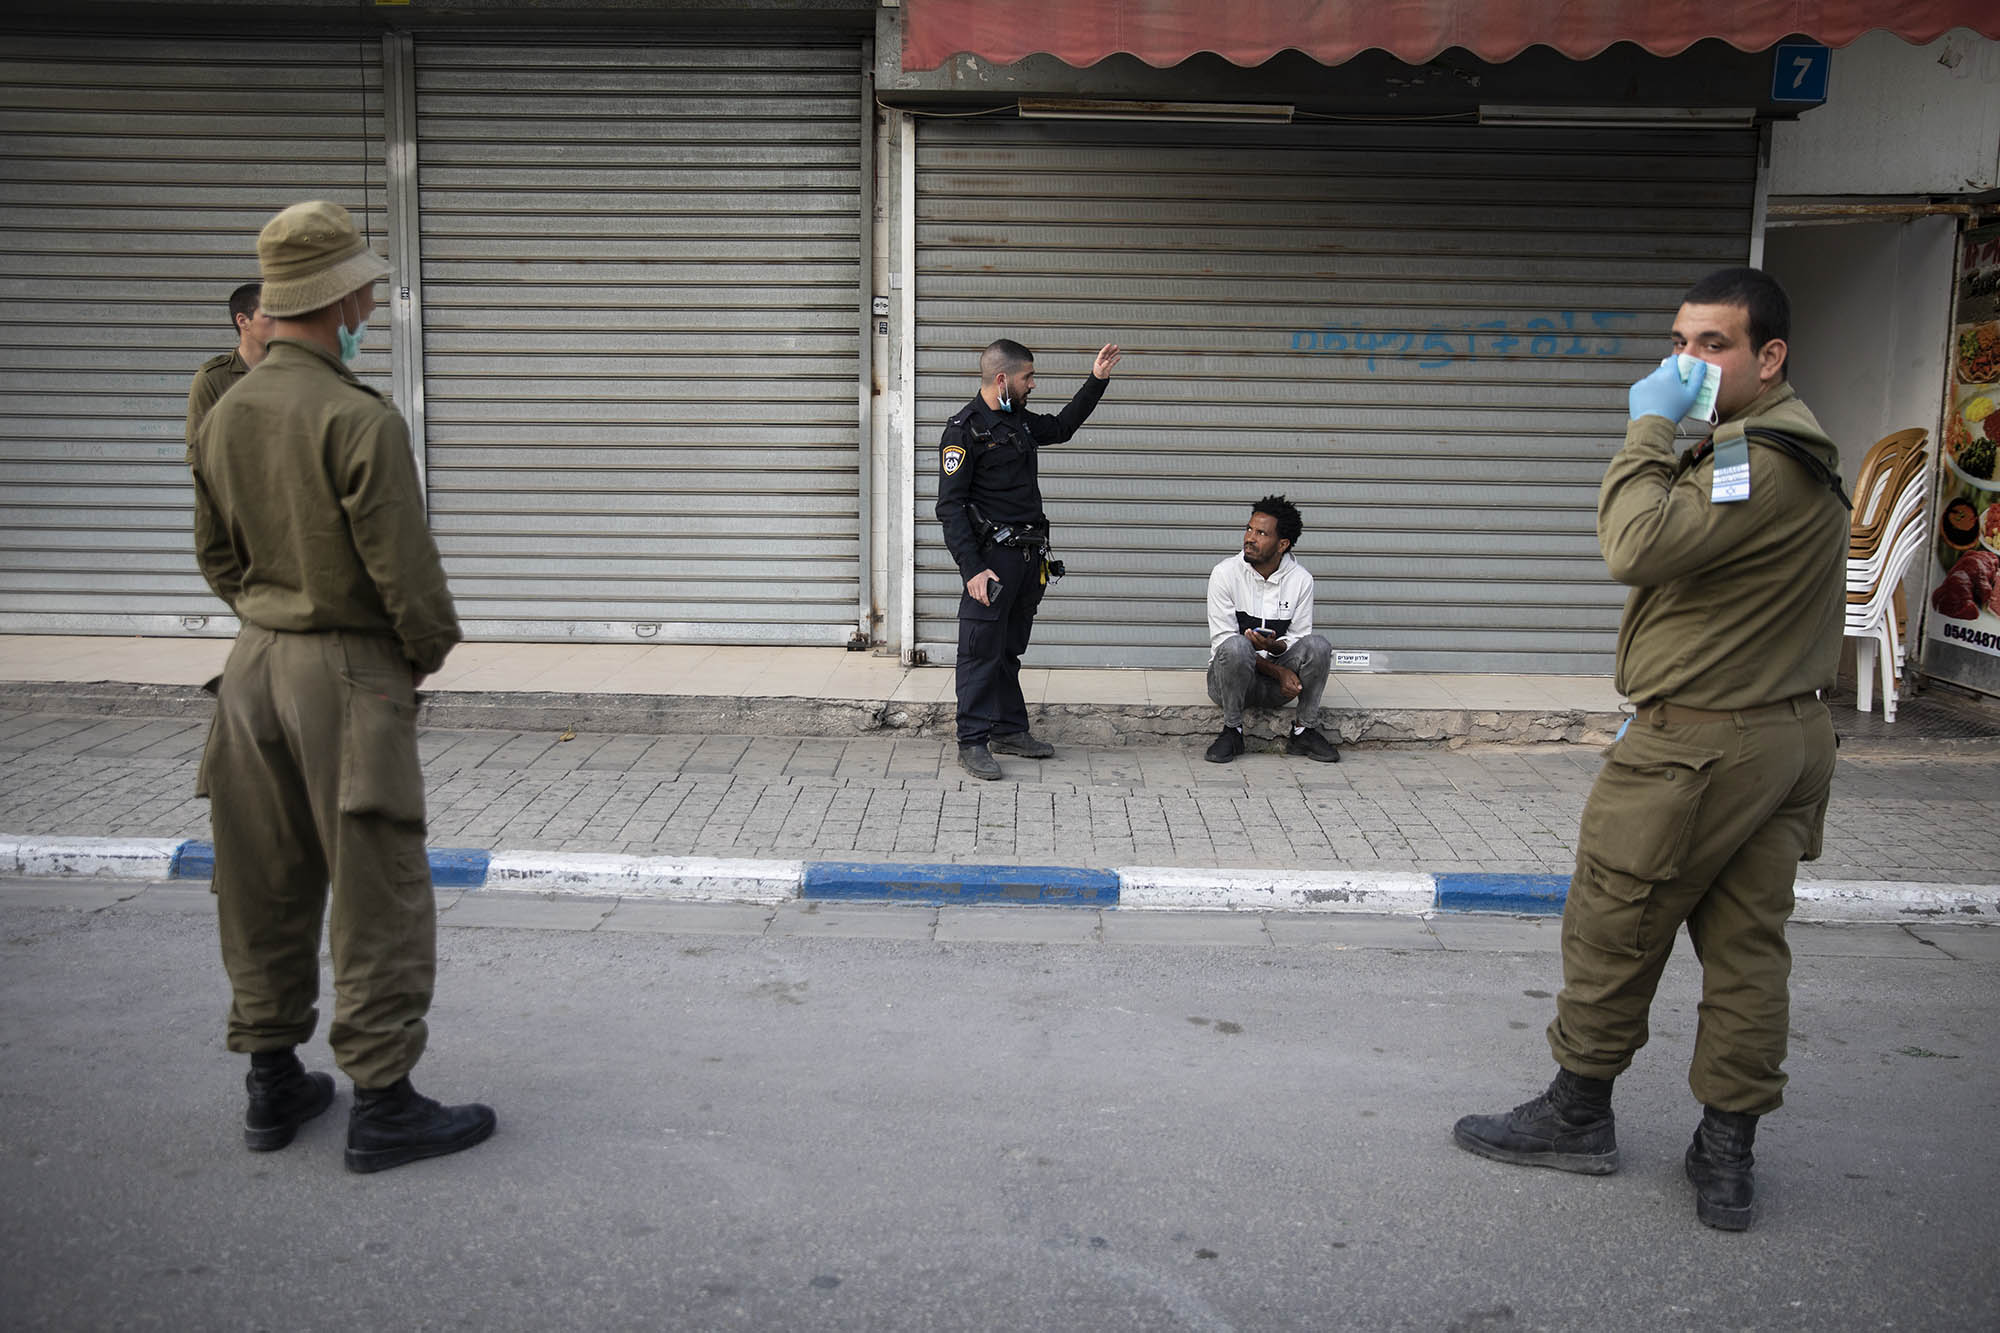 Israeli police officers and soldiers ask an asylum seeker to go inside his home in the South Tel Aviv neighborhood of Neve Shaanan, even though government regulations allow for movement in a radius of up to 100 meters away from home, March 31, 2020. (Oren Ziv)